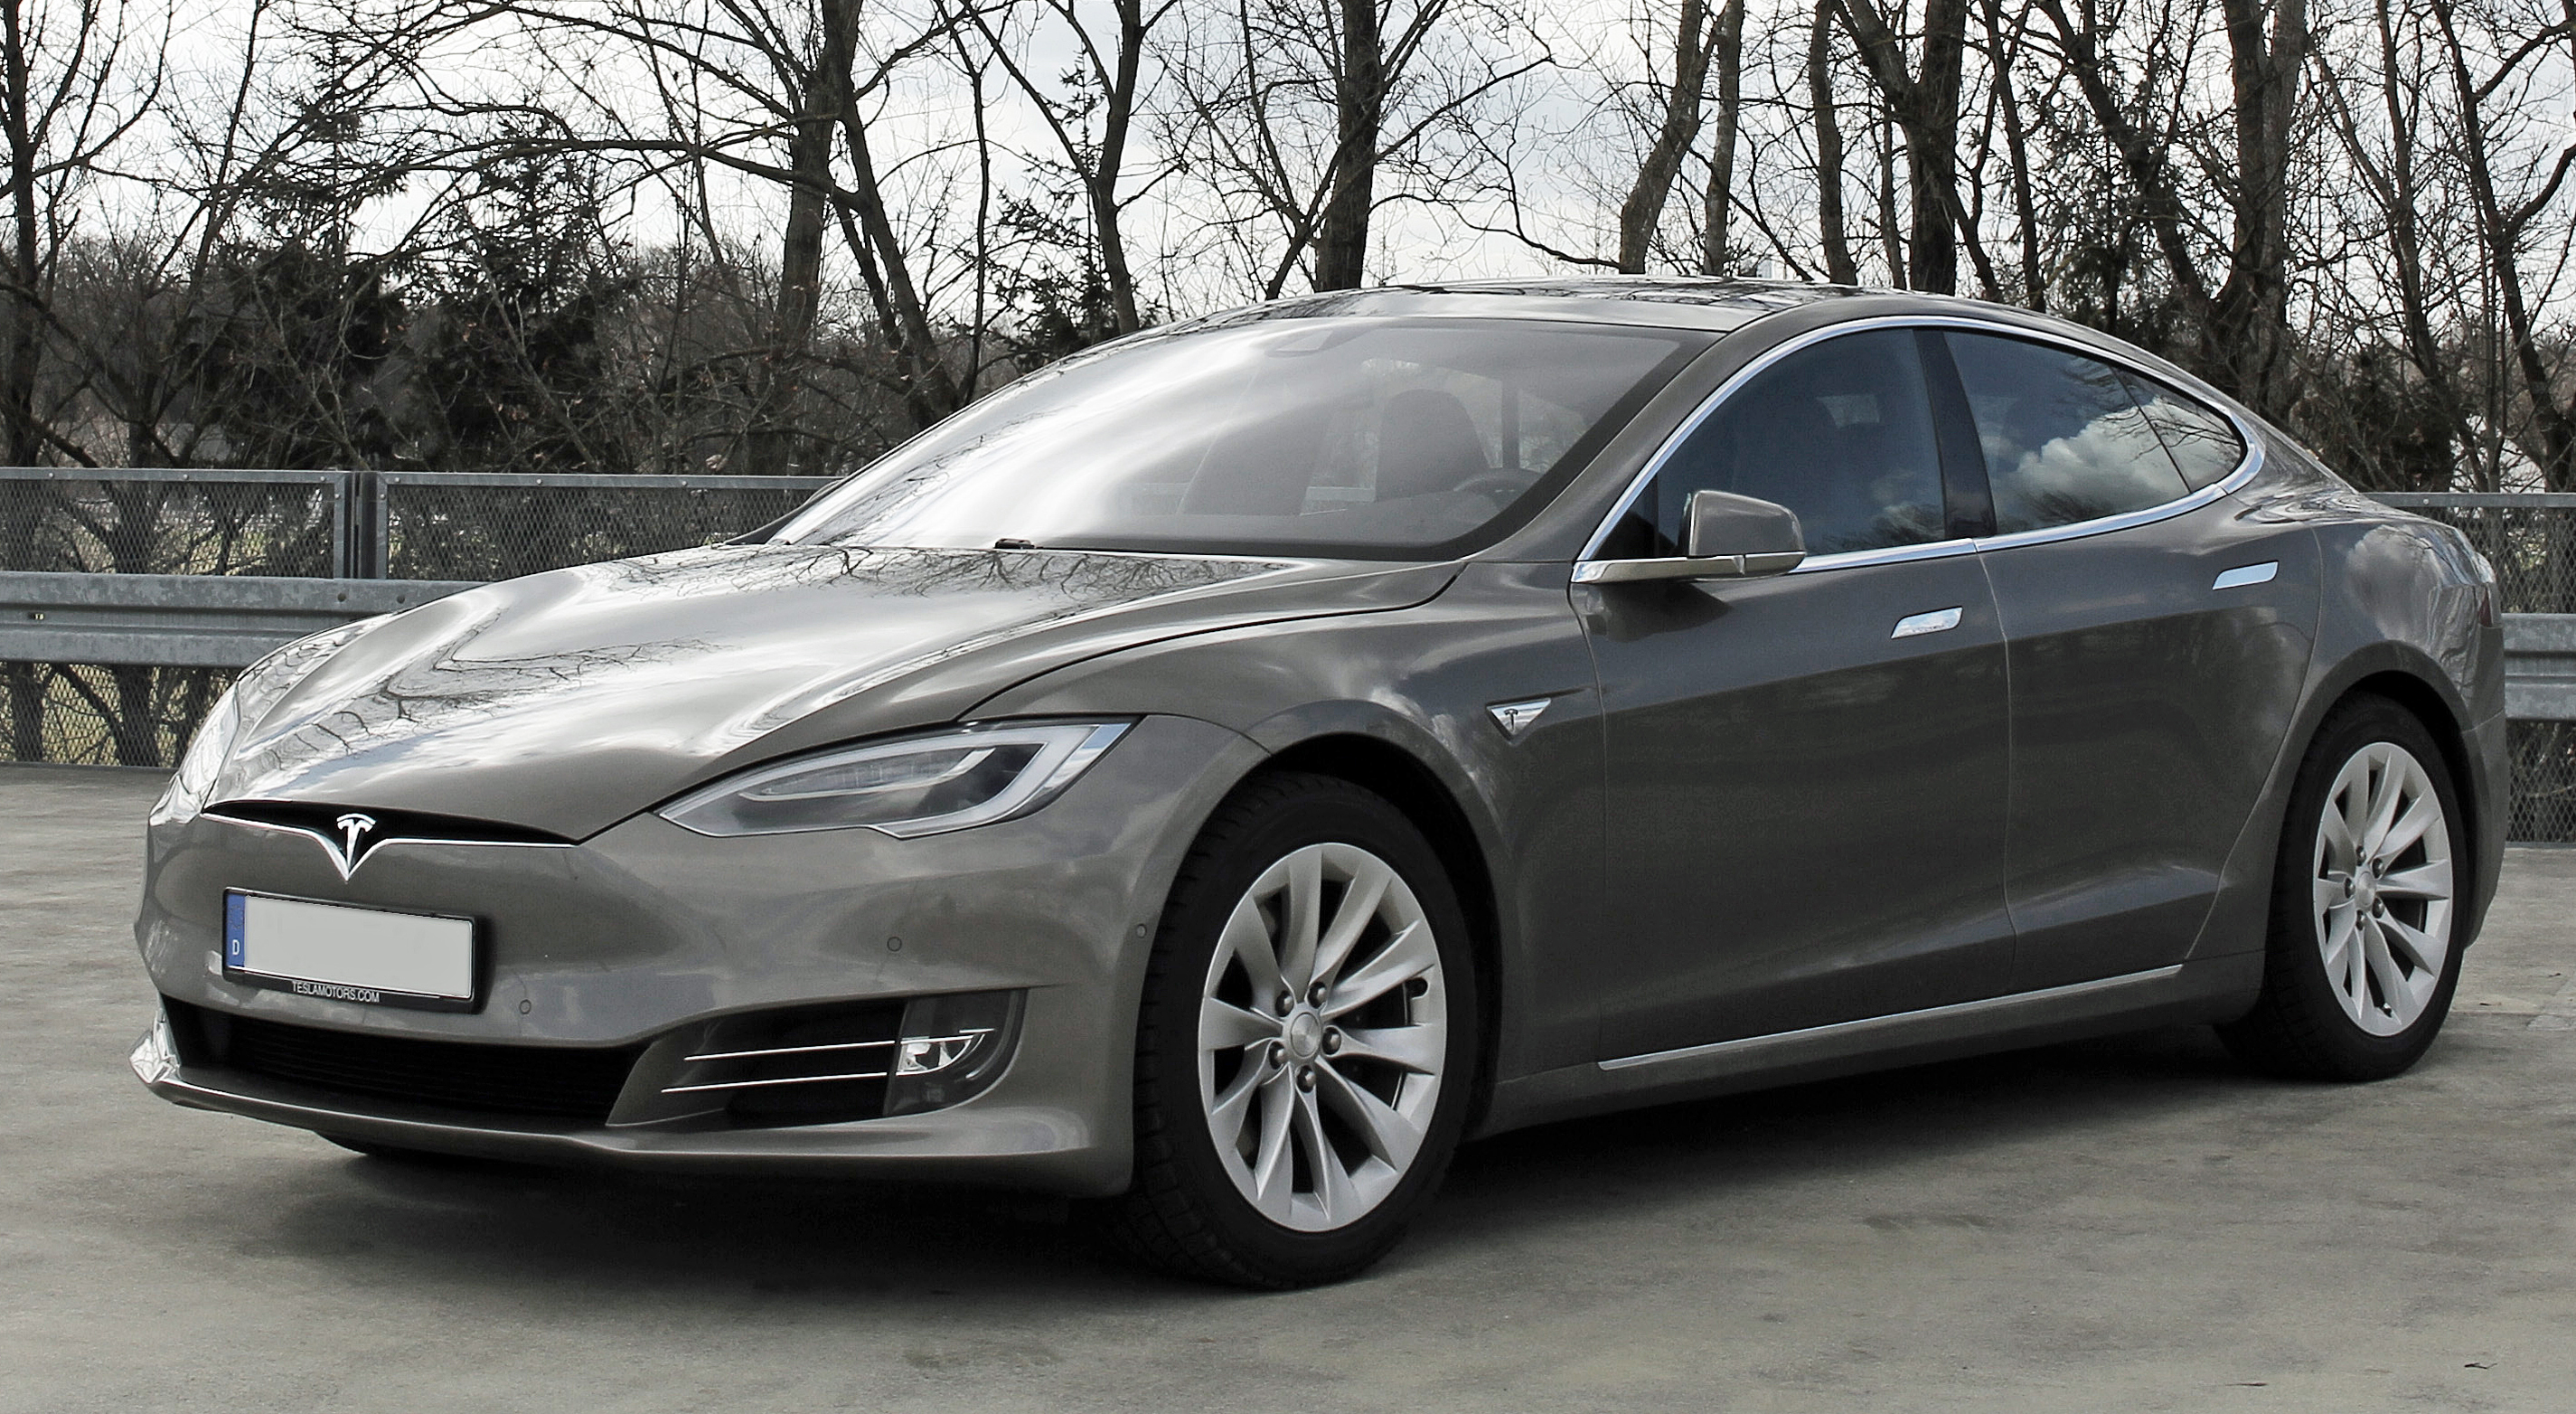 File:Tesla Model S (Facelift ab 04-2016) trimmed jpg